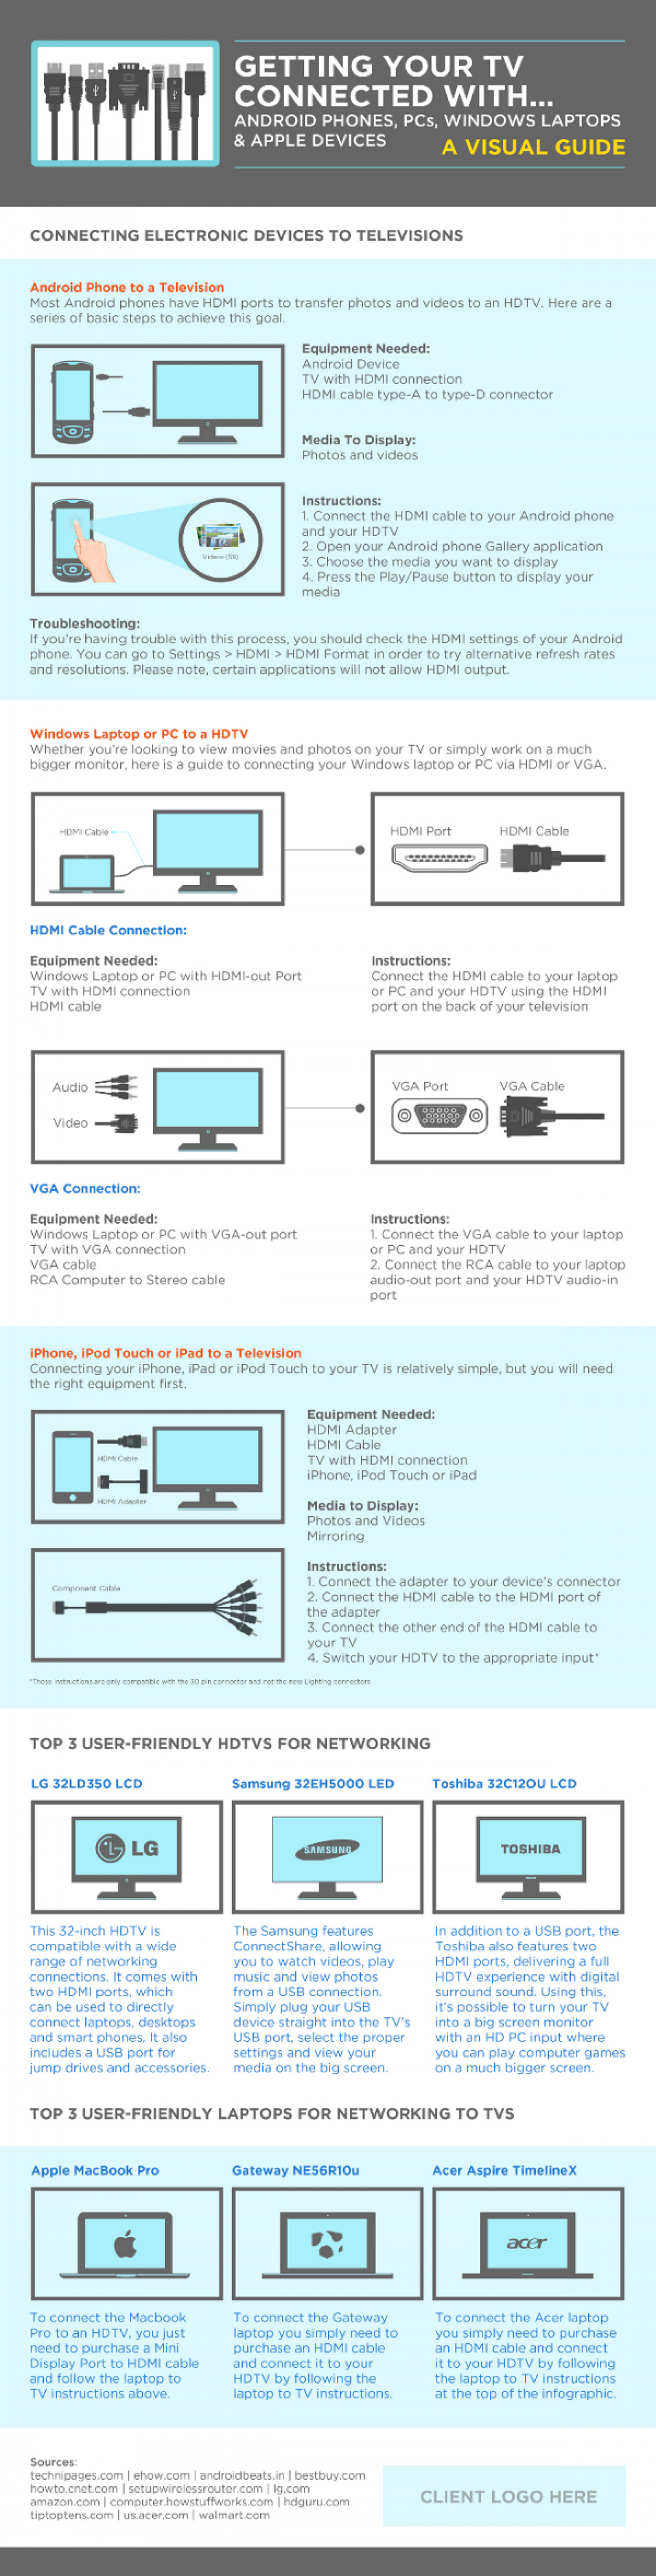 Getting Your TV Connected Infographic